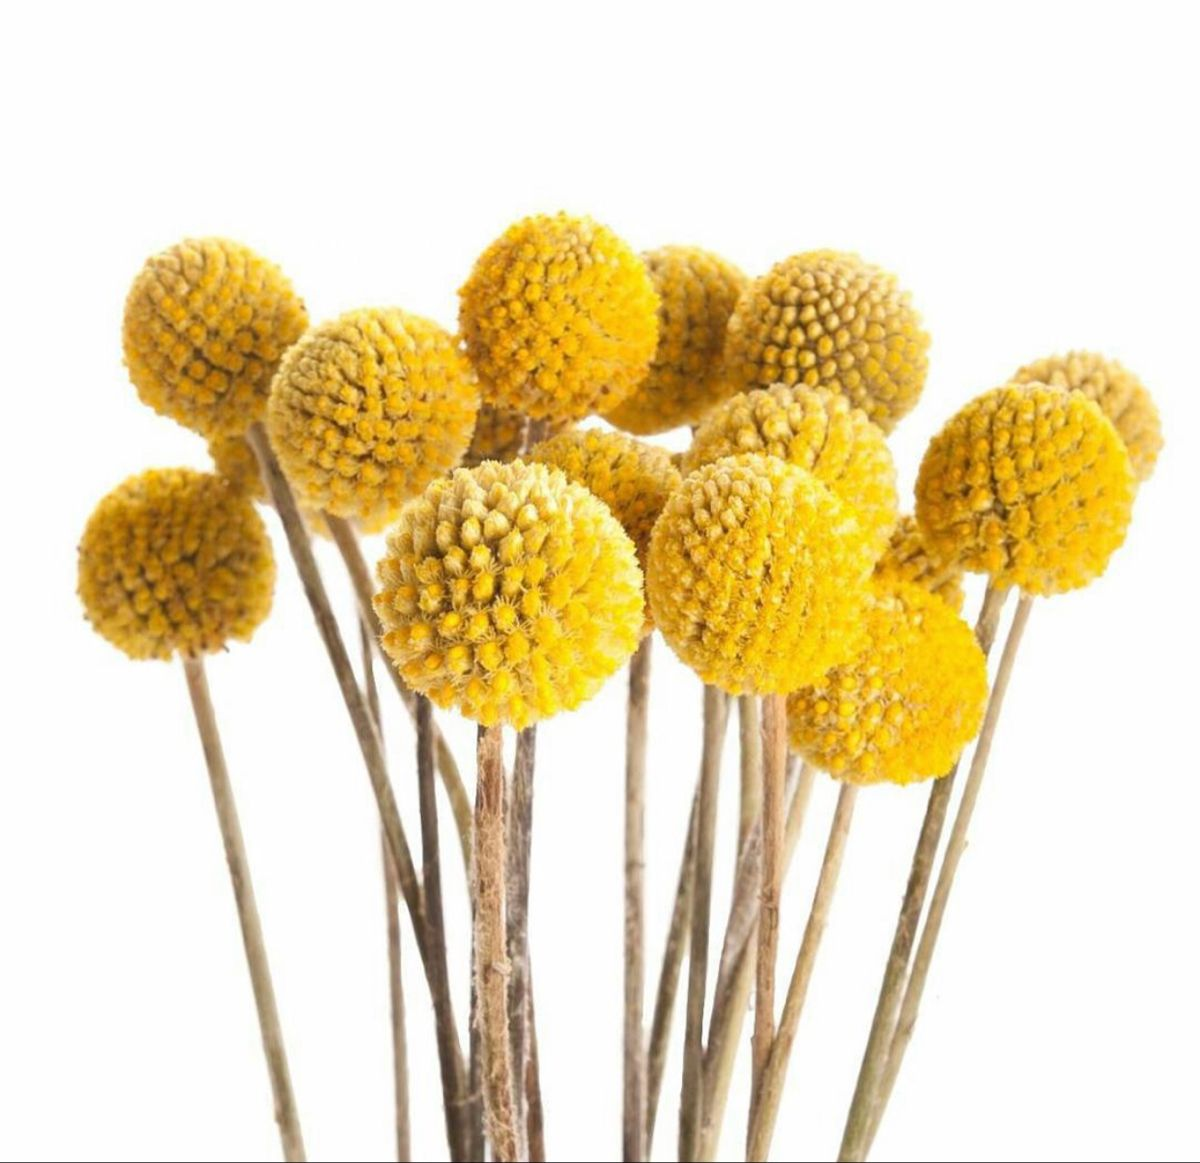 Bulk Craspedia Yellow Billy Ball Flowers In 2020 Yellow Flowers Wholesale Flowers Craspedia